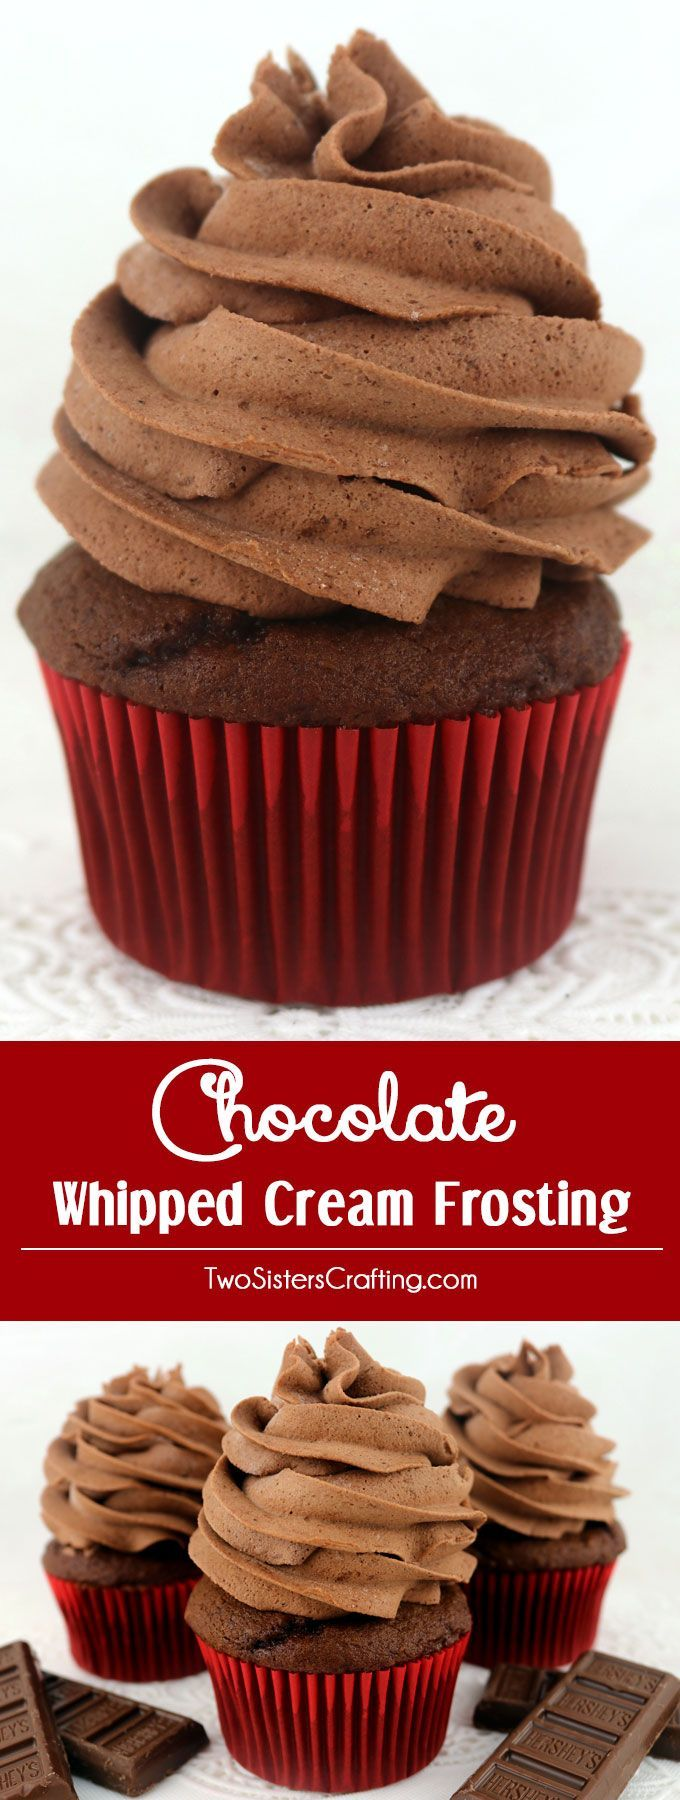 Chocolate Whipped Cream Frosting - light and airy and delicious and it tastes just like Chocolate Whipped Cream. But unlike regular Whipping Cream, this frosting holds its shape, lasts for days and can be used to frost both cake and cupcakes. And it is so easy to make. This yummy Chocolate frosting will become an instant favorite. Pin this homemade icing for later and follow us for more great Frosting Recipes!